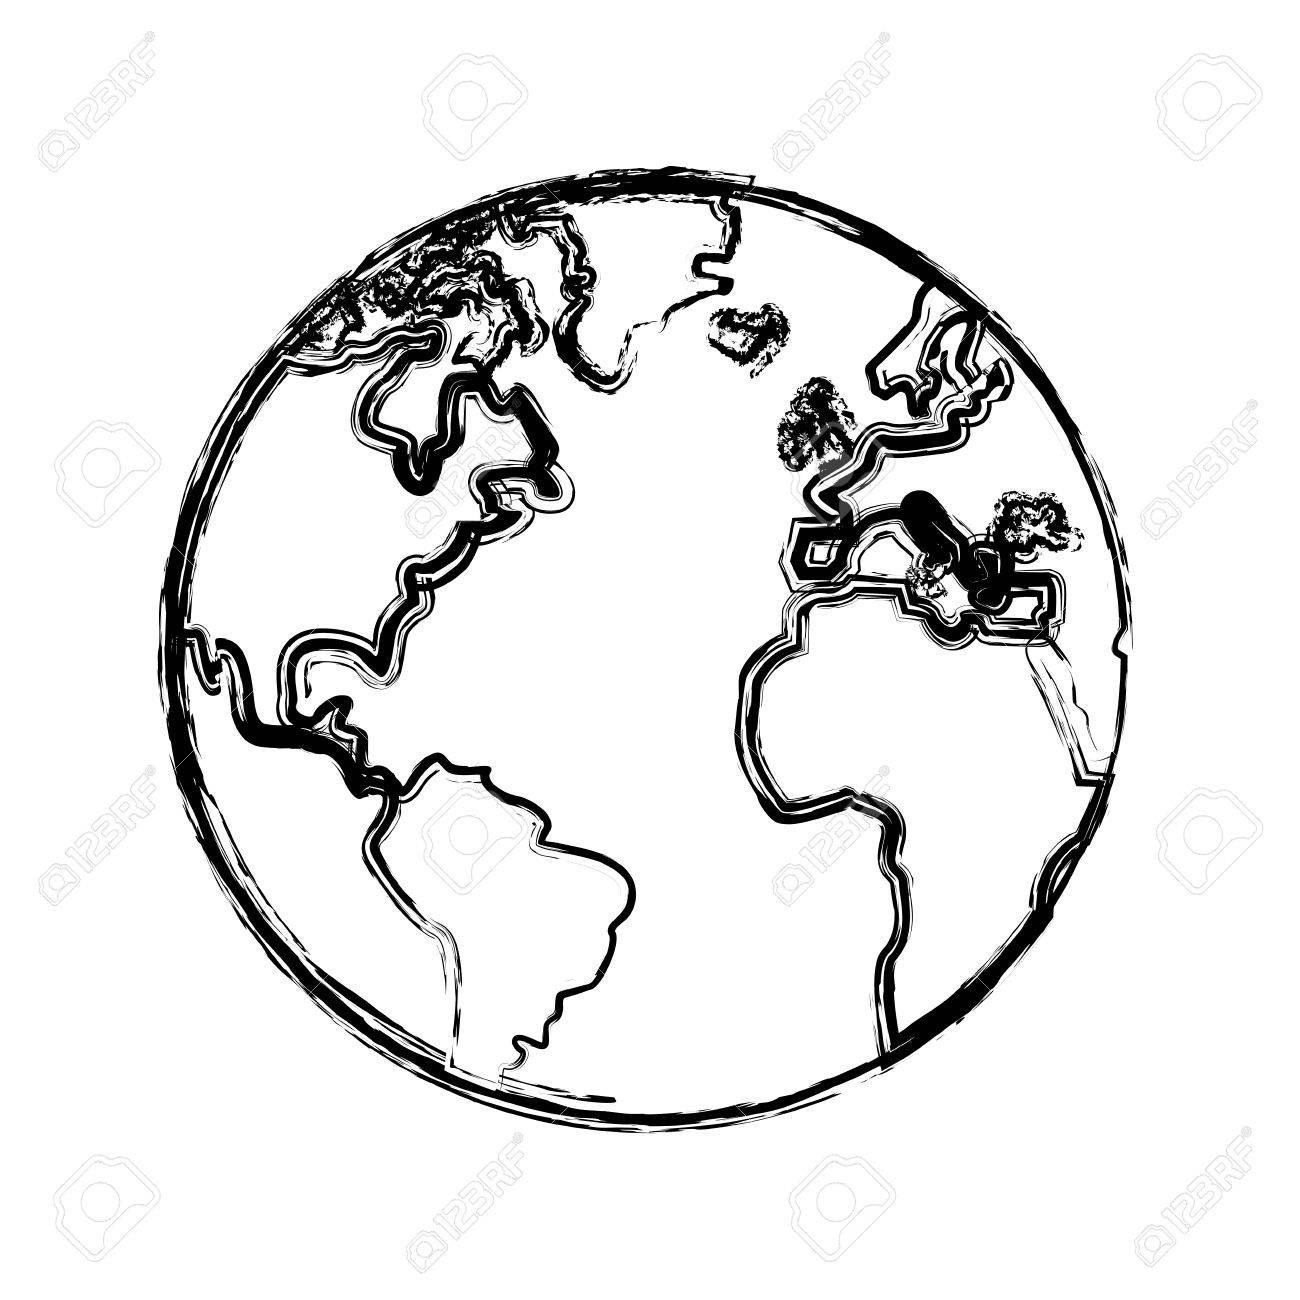 Sketch globe world earth map icon vector illustration royalty free sketch globe world earth map icon vector illustration stock vector 79062371 gumiabroncs Images